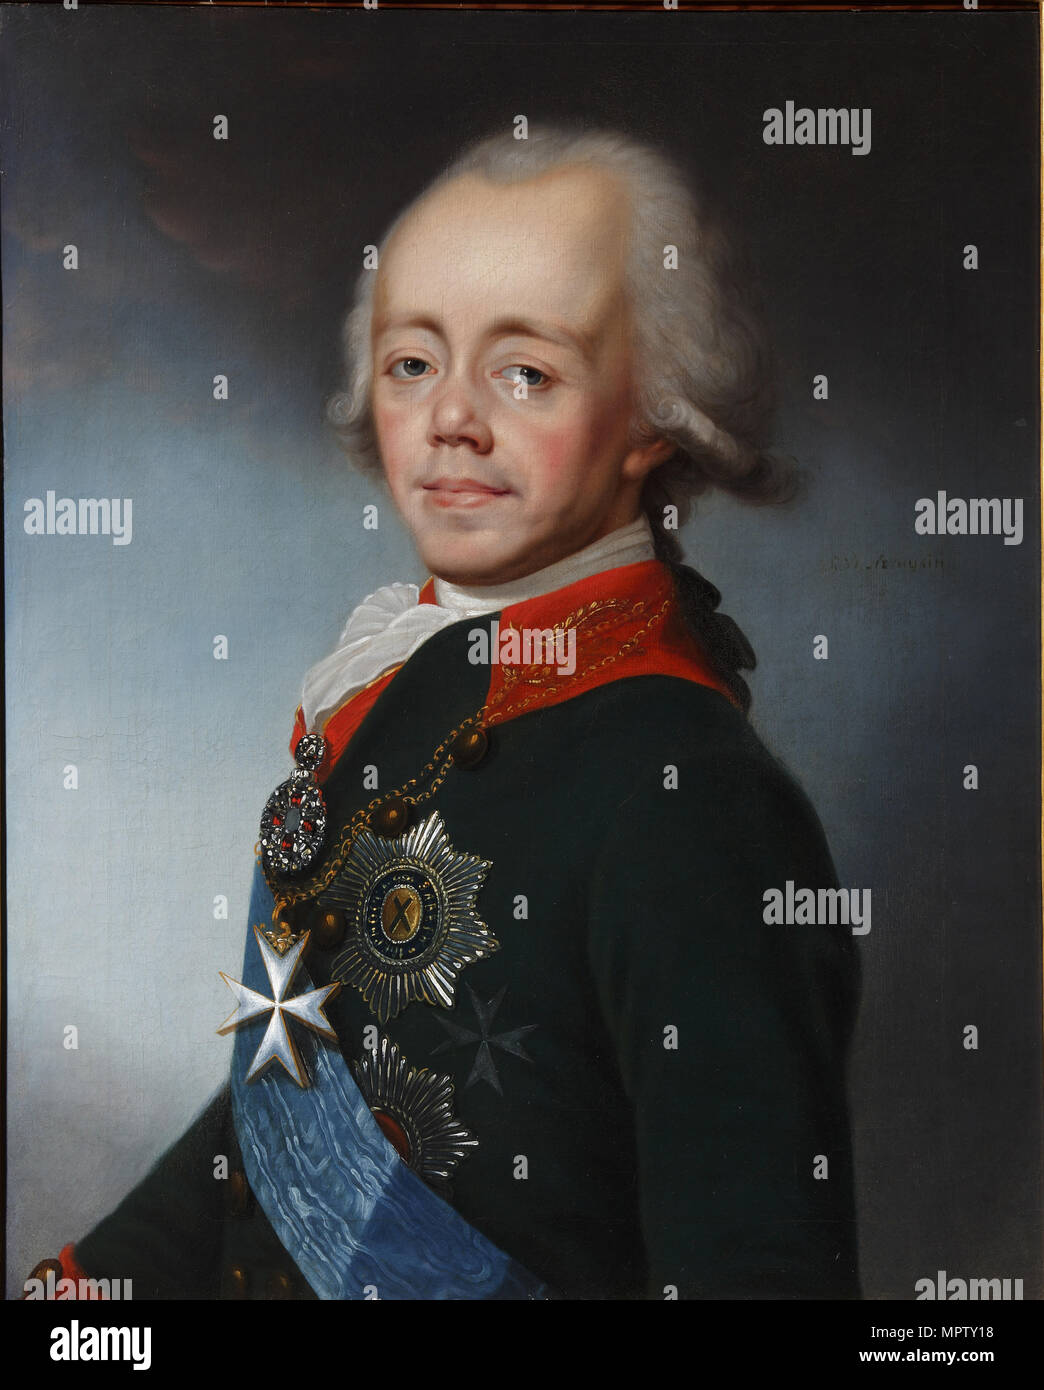 Portrait of the Emperor Paul I of Russia (1754-1801). Stock Photo